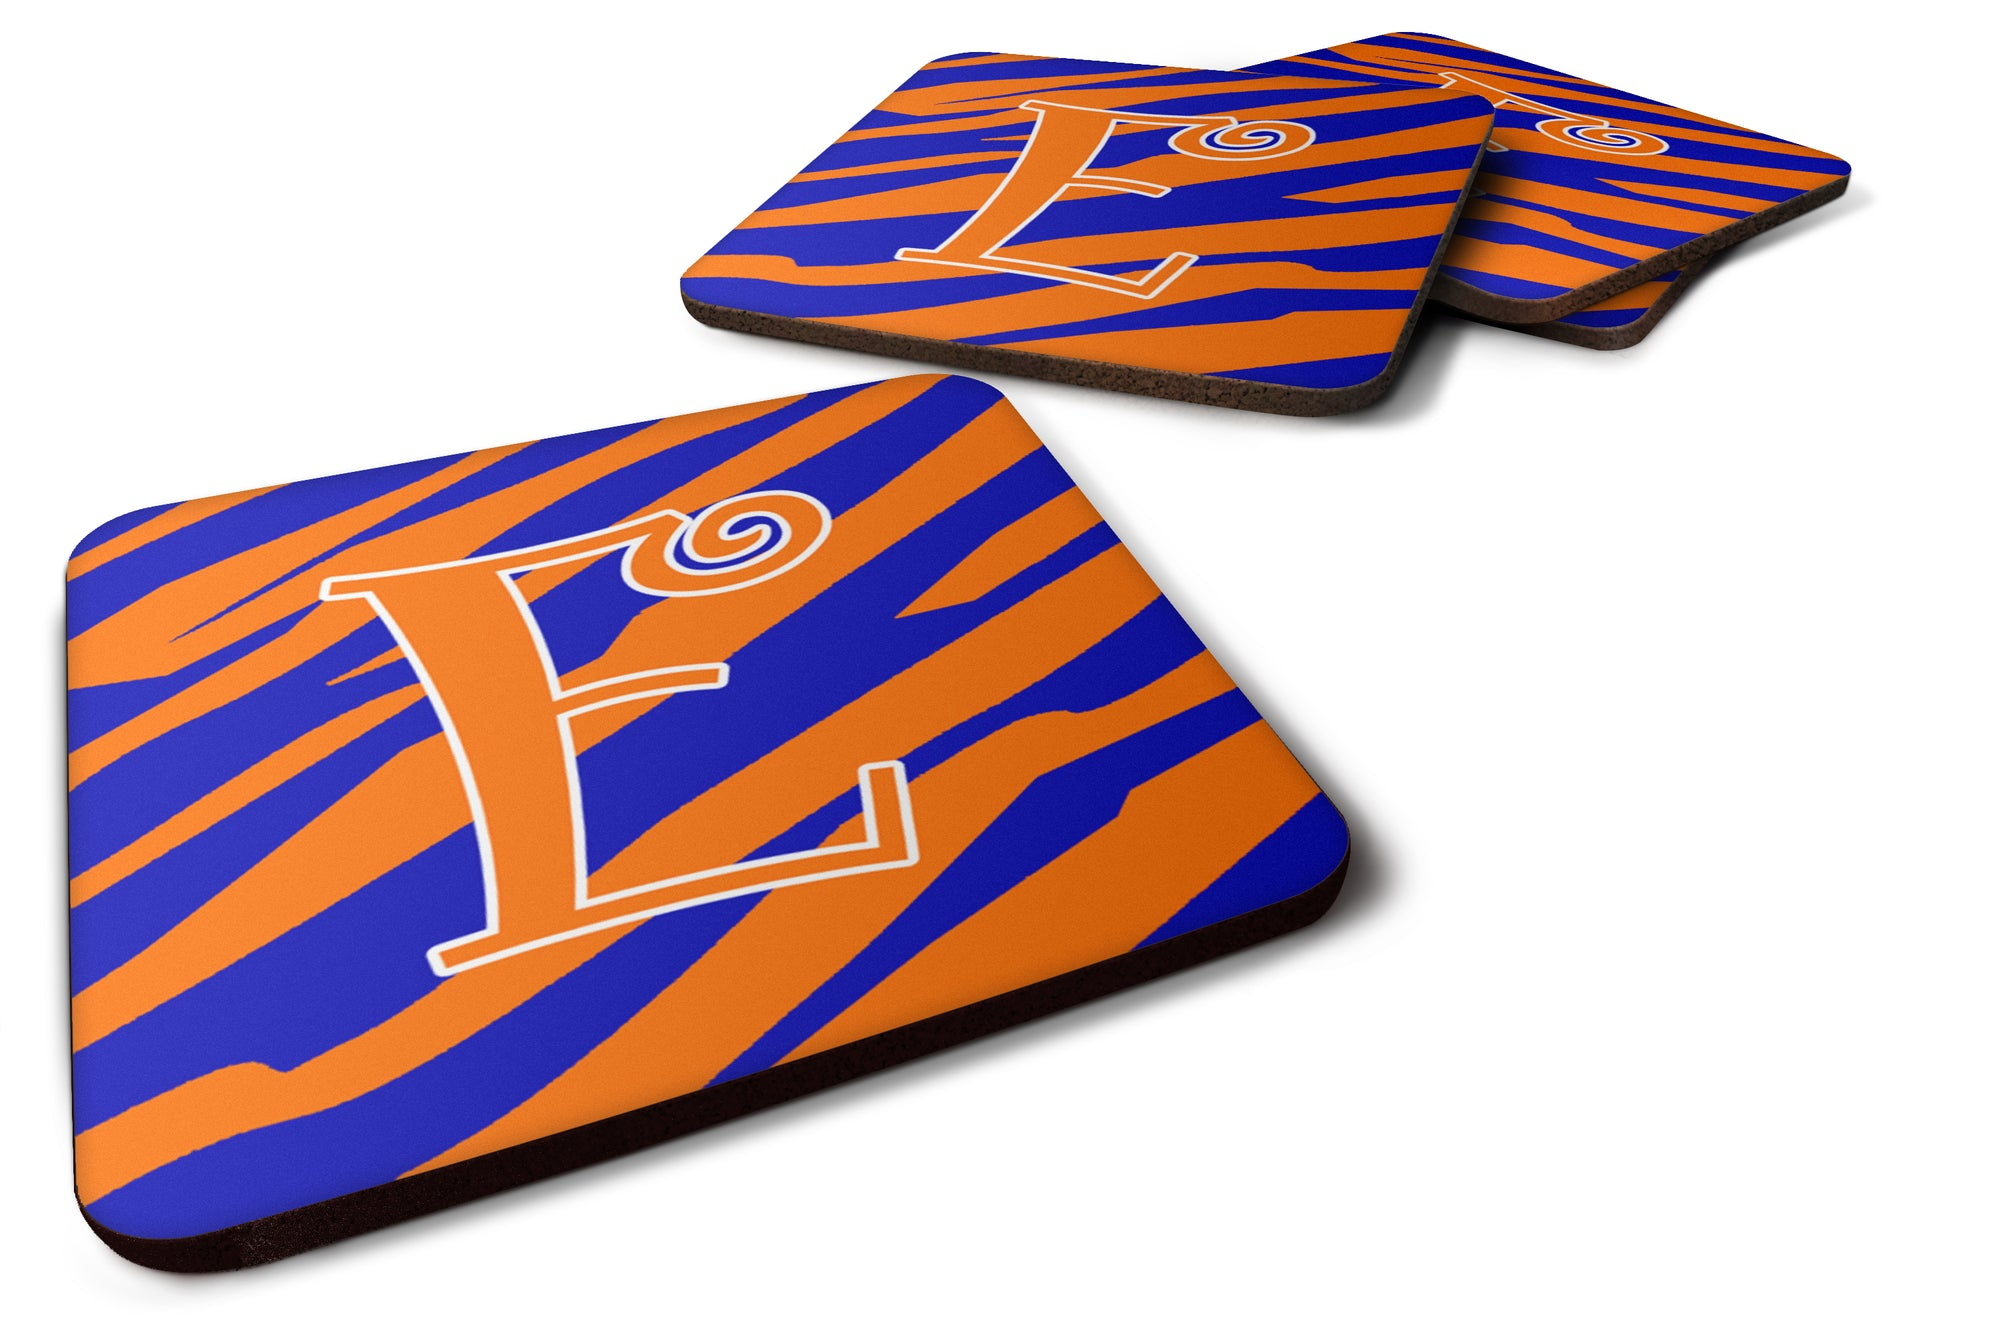 Set of 4 Monogram - Tiger Stripe Blue and Orange Foam Coasters Initial Letter E by Caroline's Treasures